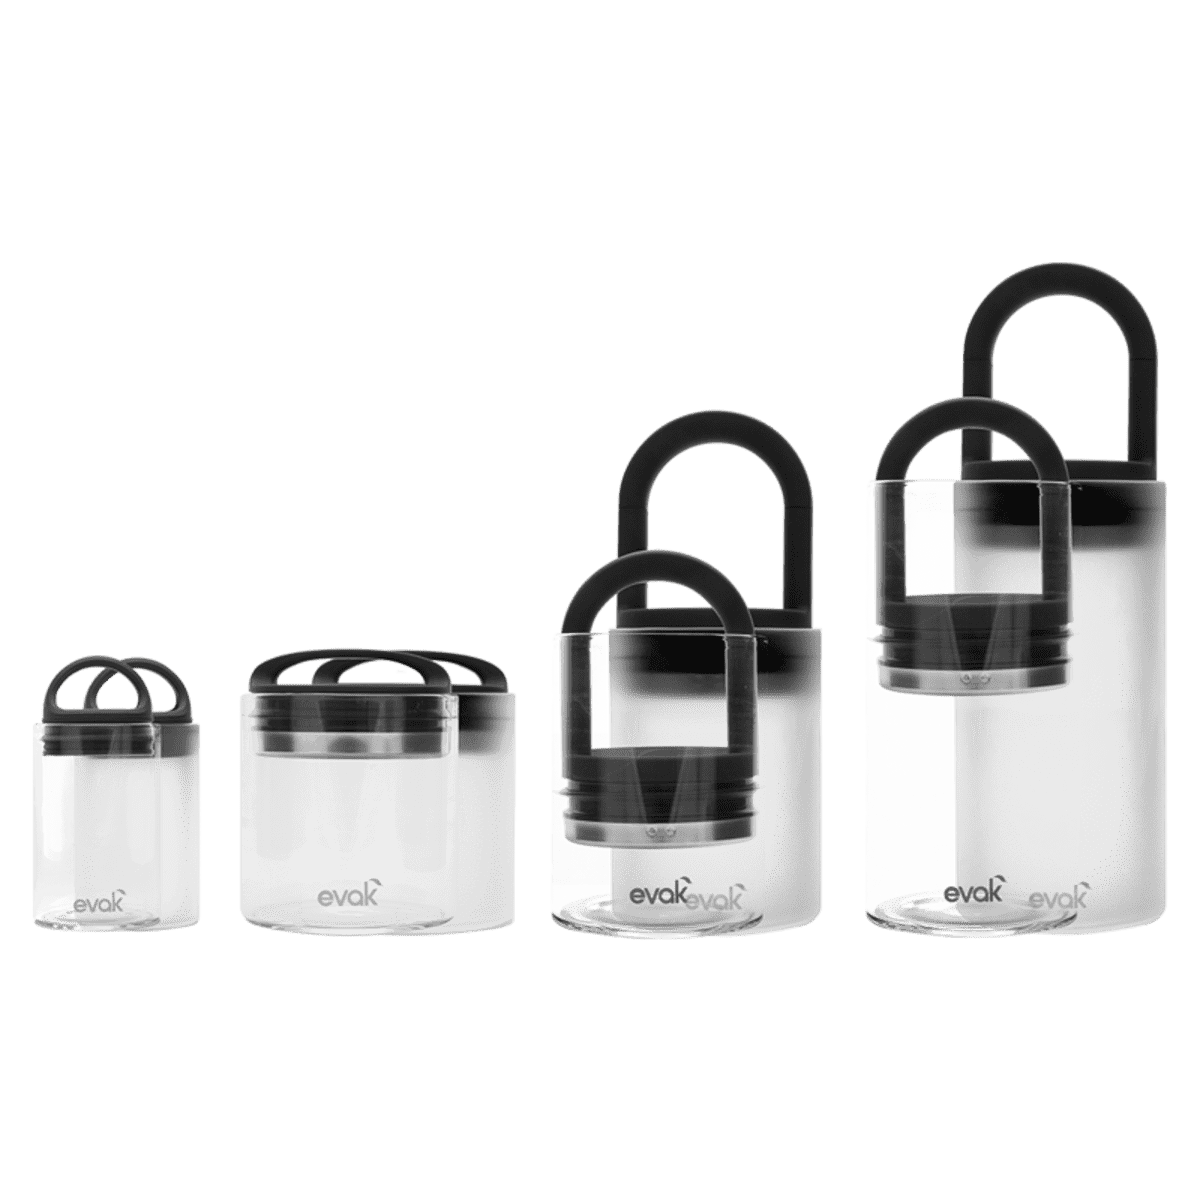 EVAK Compact Glass Container